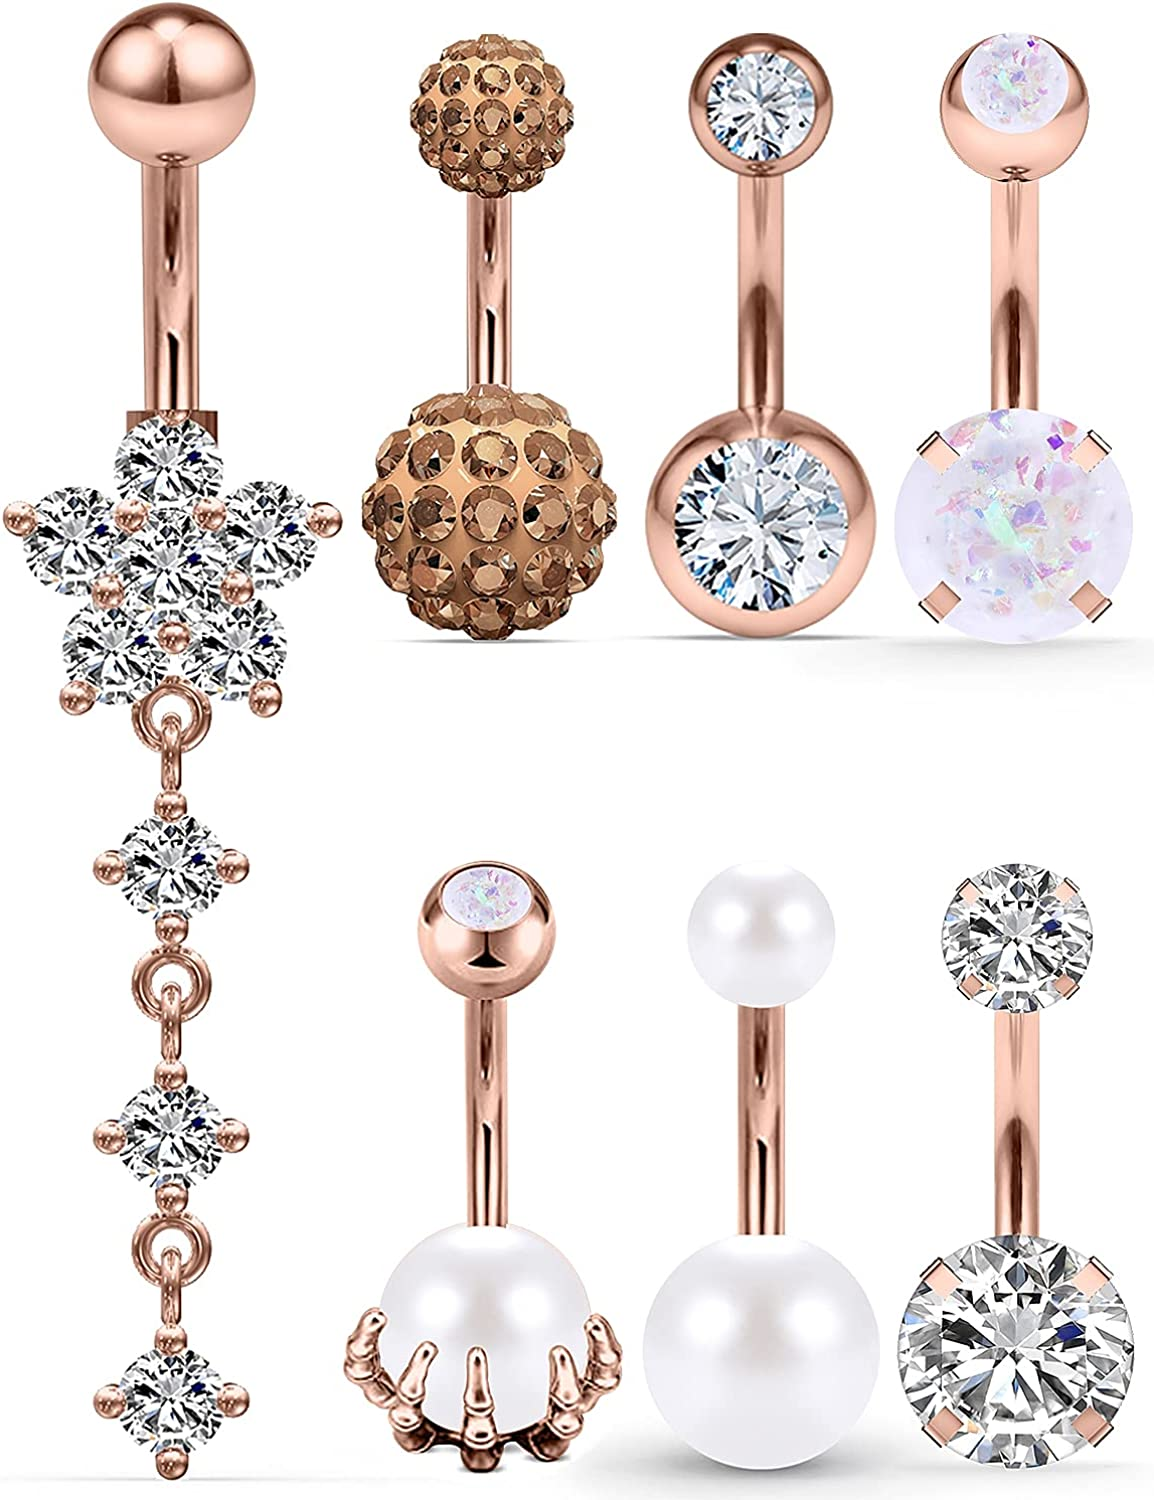 Hnxnskt 14G Belly Button Rings Surgical Stainless Steel Belly Rings 10mm Curved Barbarll Dangle Navel Piercing Jewelry for Women